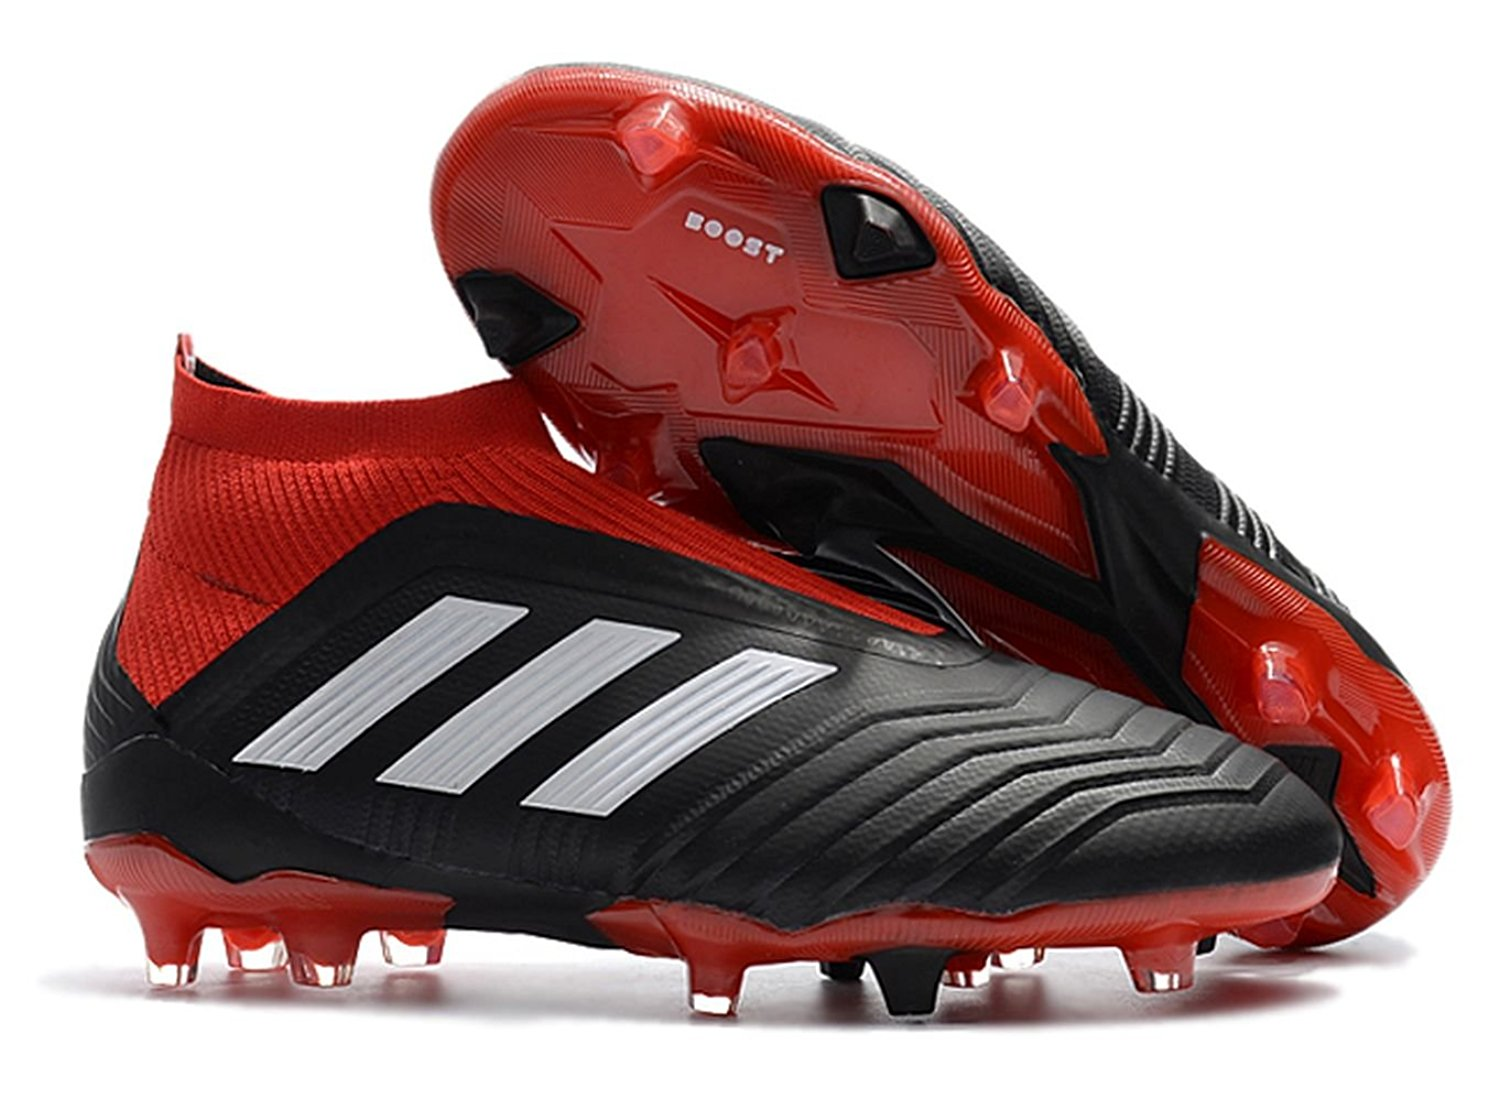 check out 8468b 681f9 Get Quotations · New Predator 18+ FG High Ankle Cleats Black Red (7 US)